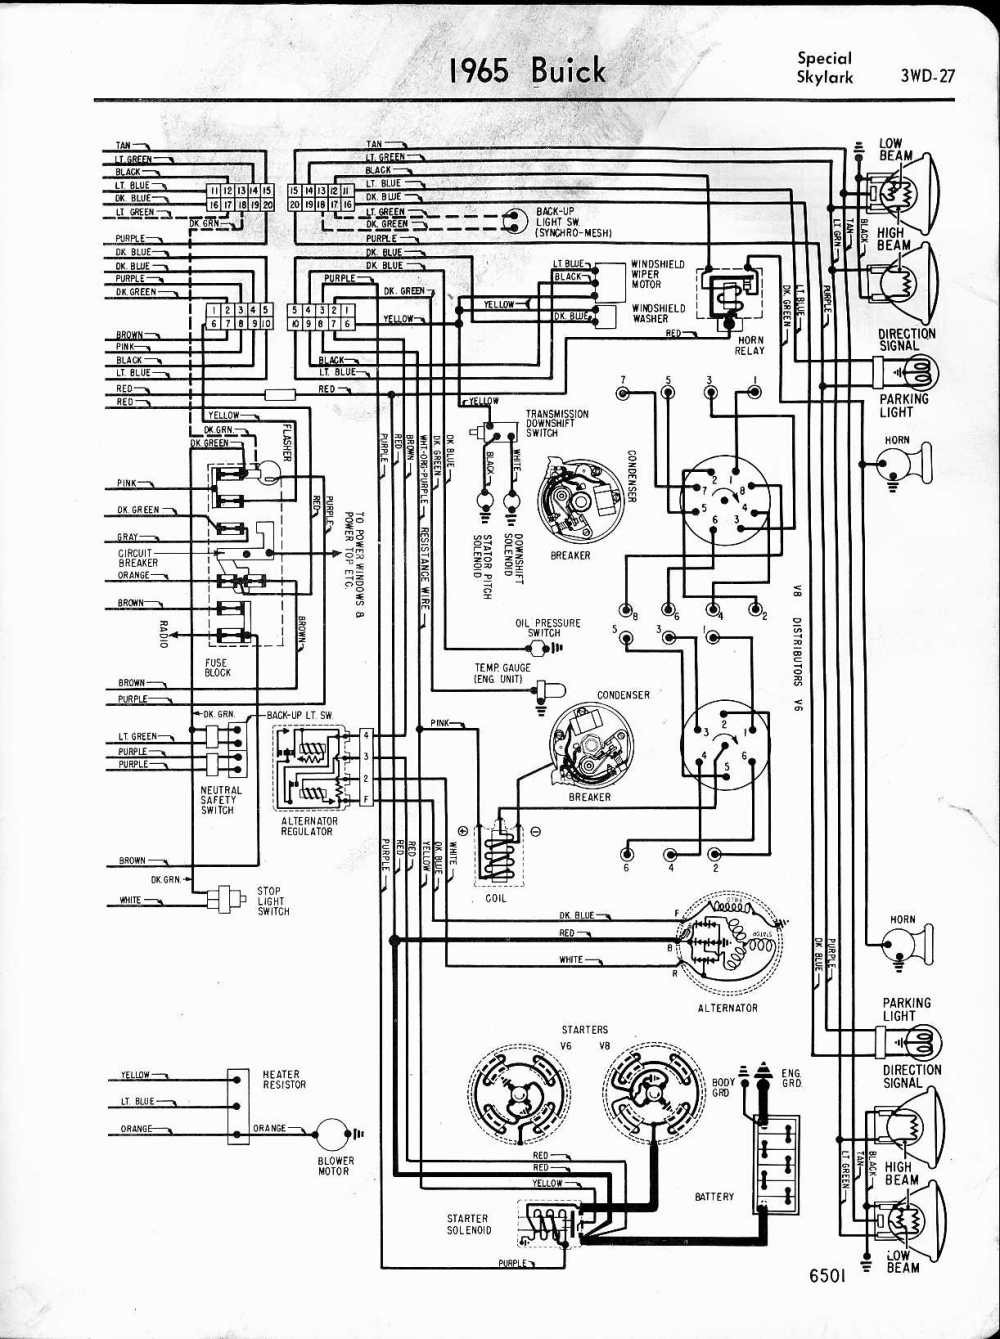 medium resolution of 1972 buick riviera wiring diagram wiring diagram third level rh 19 20 jacobwinterstein com 1996 buick lesabre wiring diagram 1998 buick lesabre wiring